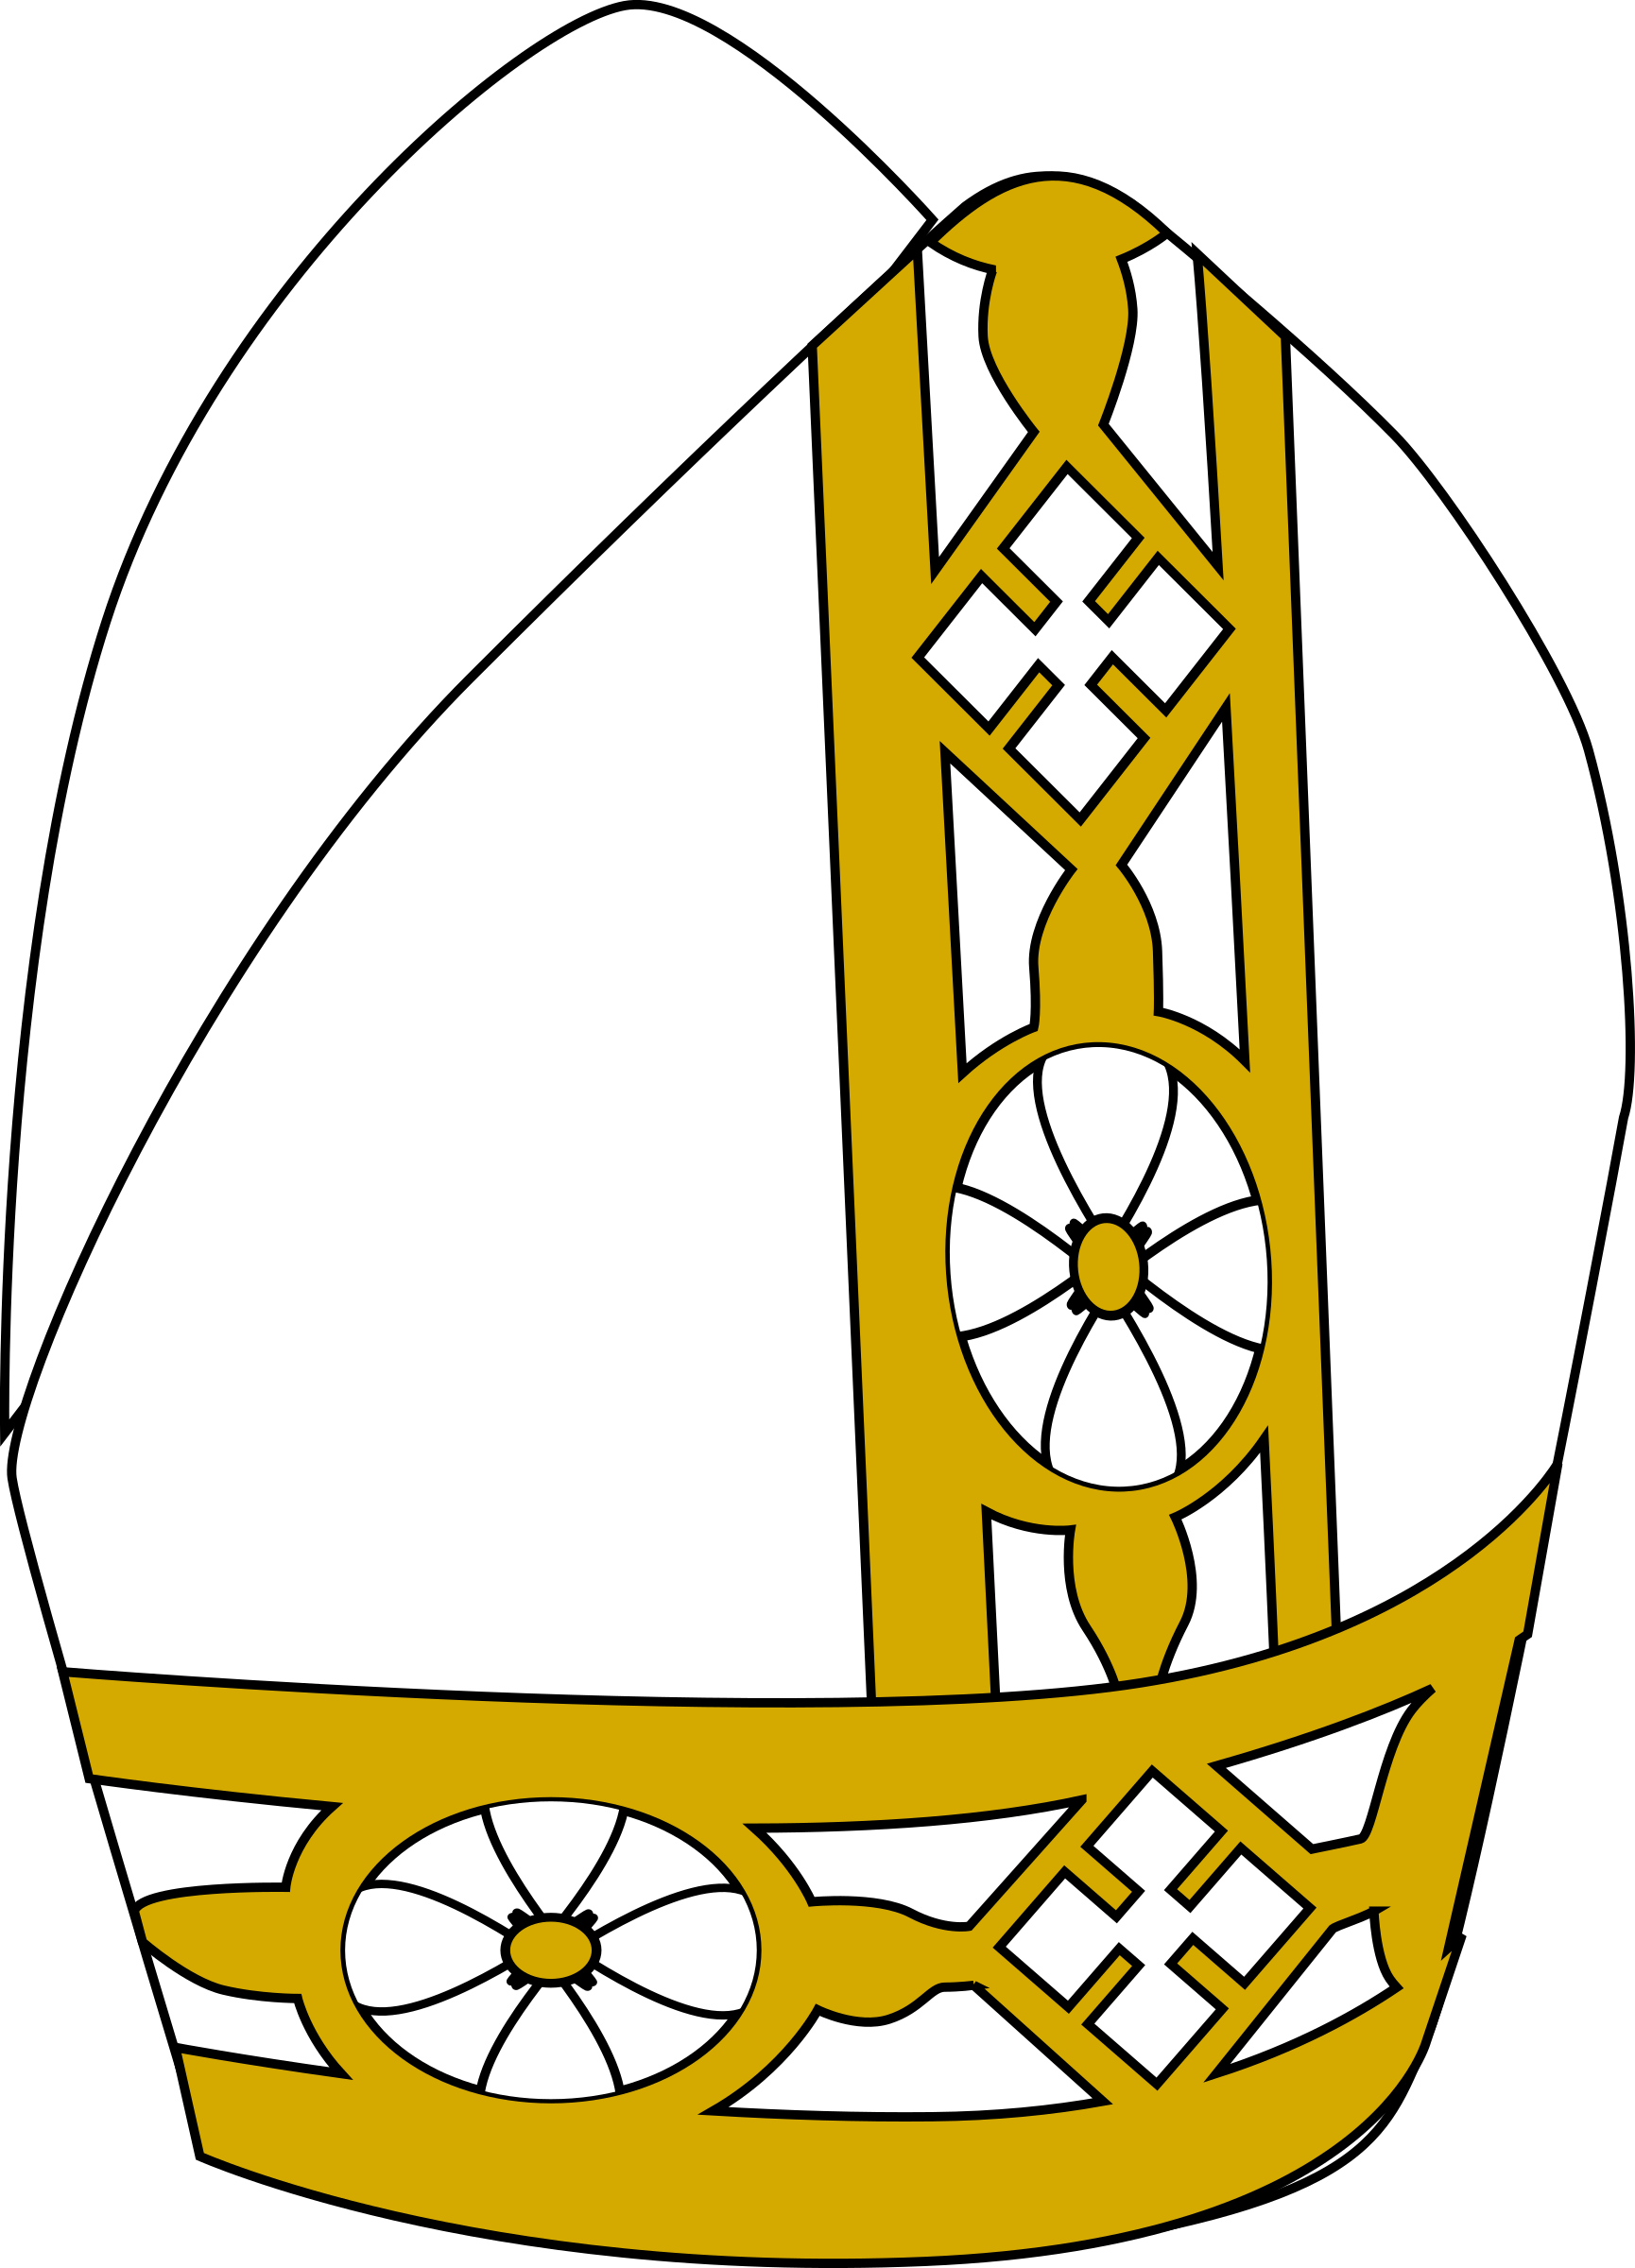 Pope Hat Vector Clipart image.